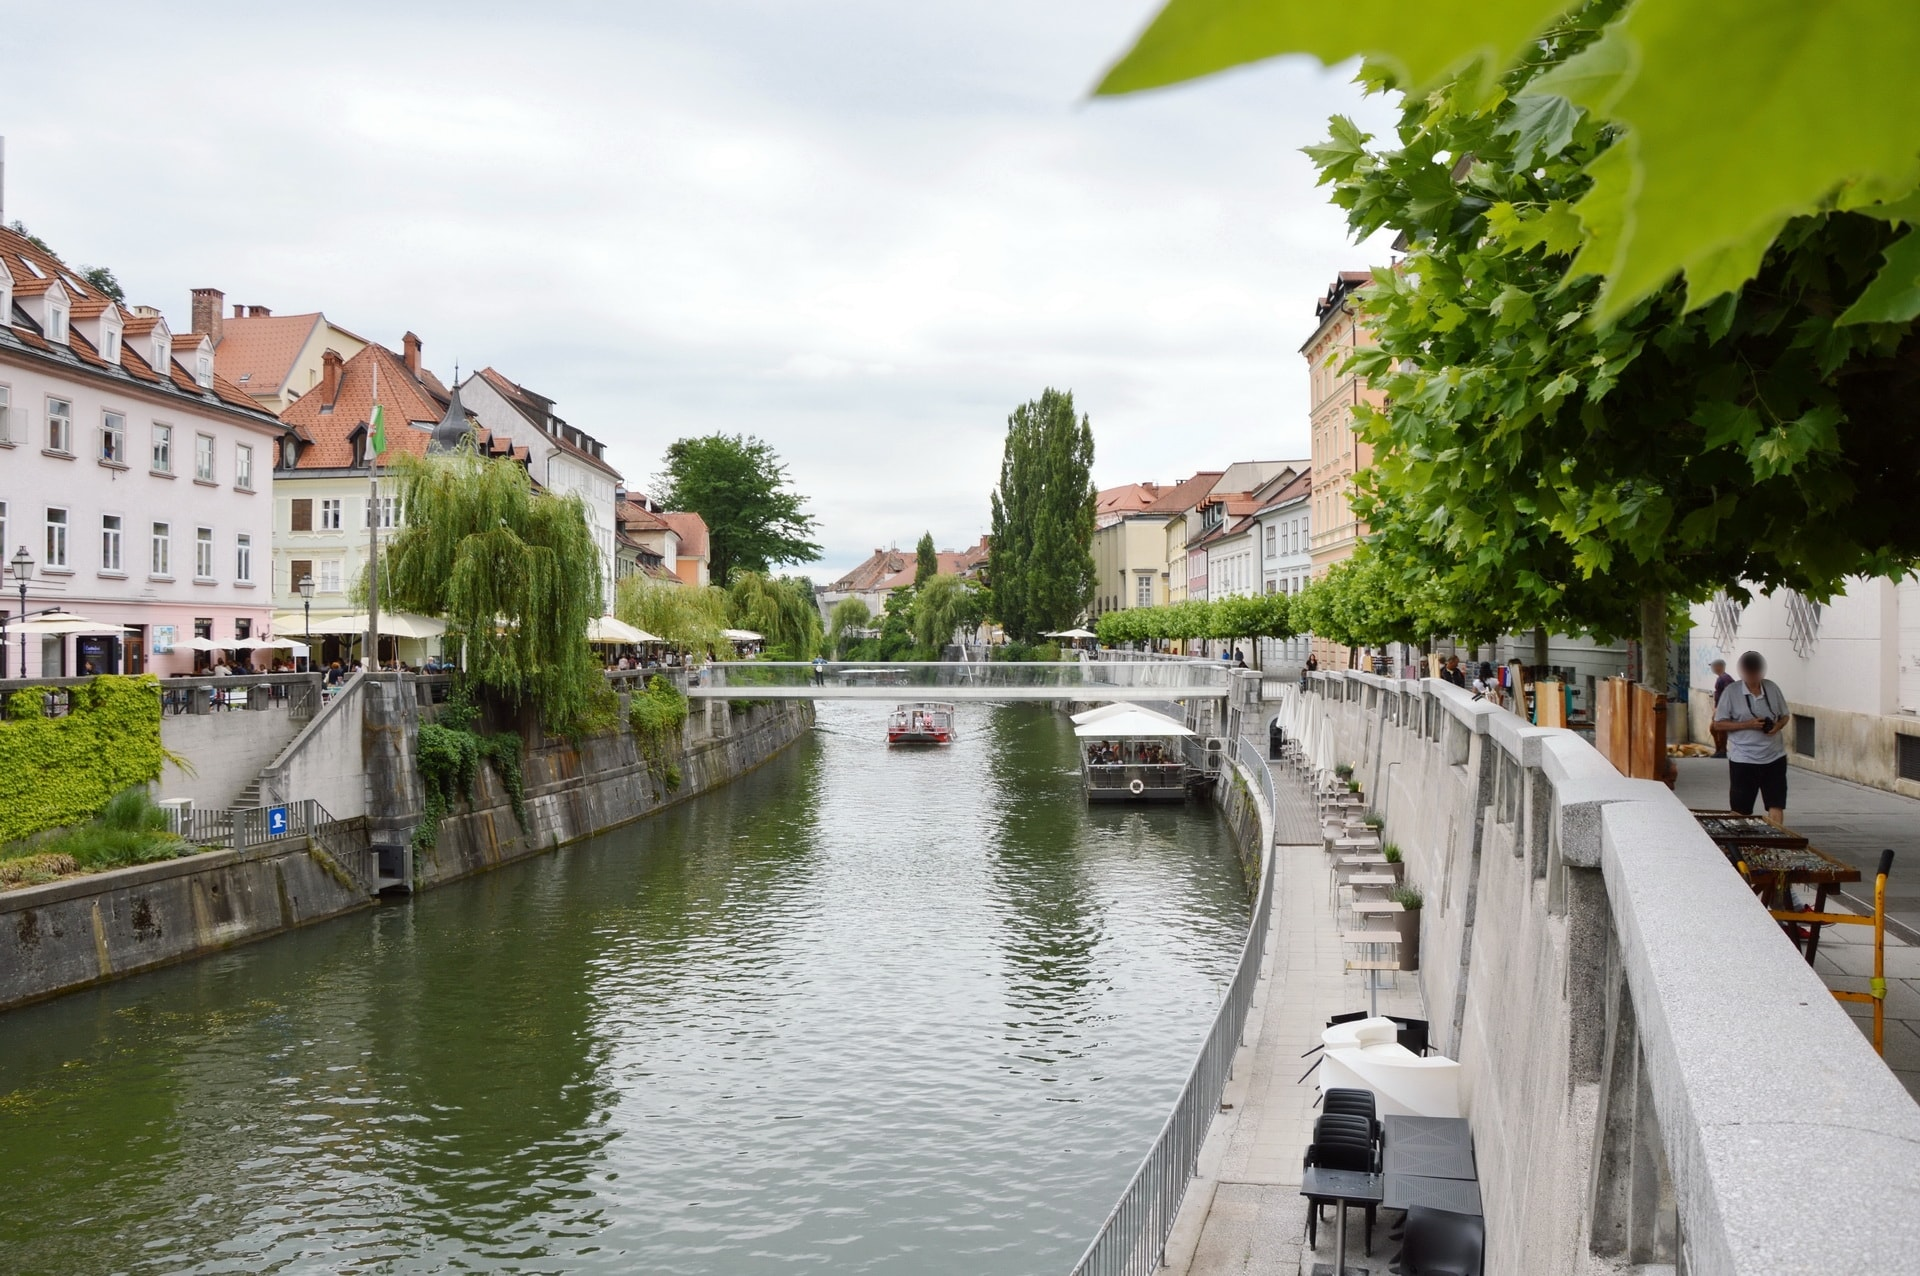 Embankments of the Slovenian capital are lined with trees